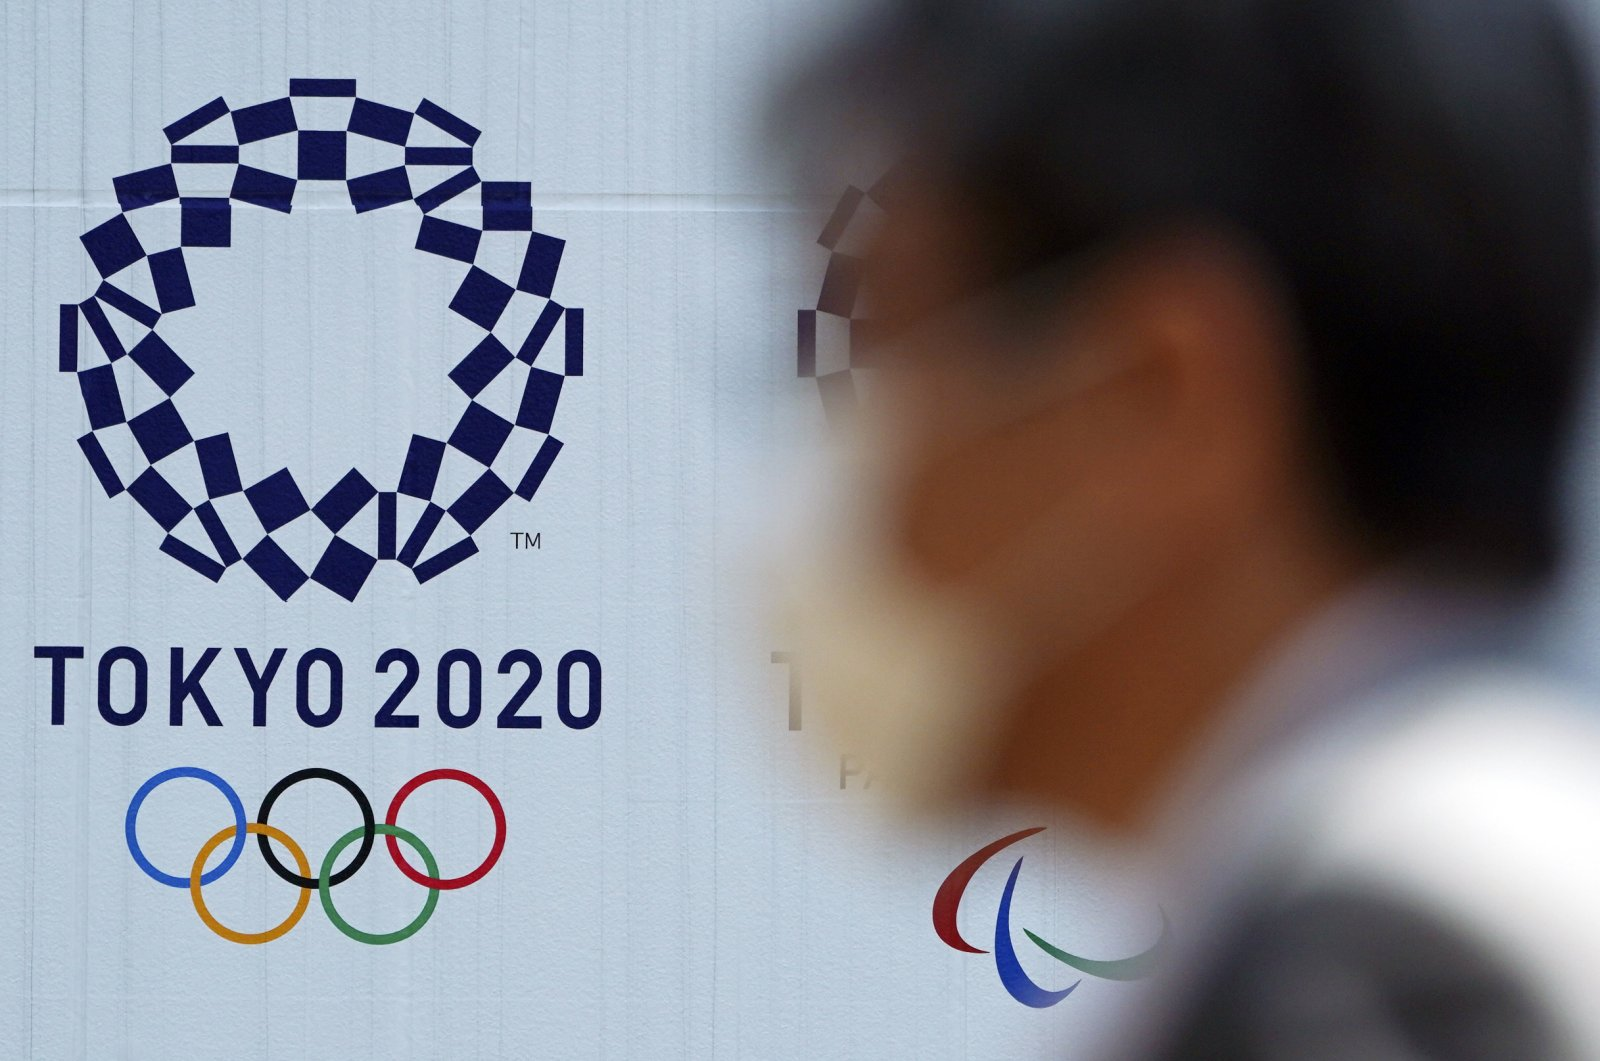 A man wearing a face mask walks near the logo of the Tokyo 2020 Olympics, in Tokyo, April 2, 2020. (AP Photo)